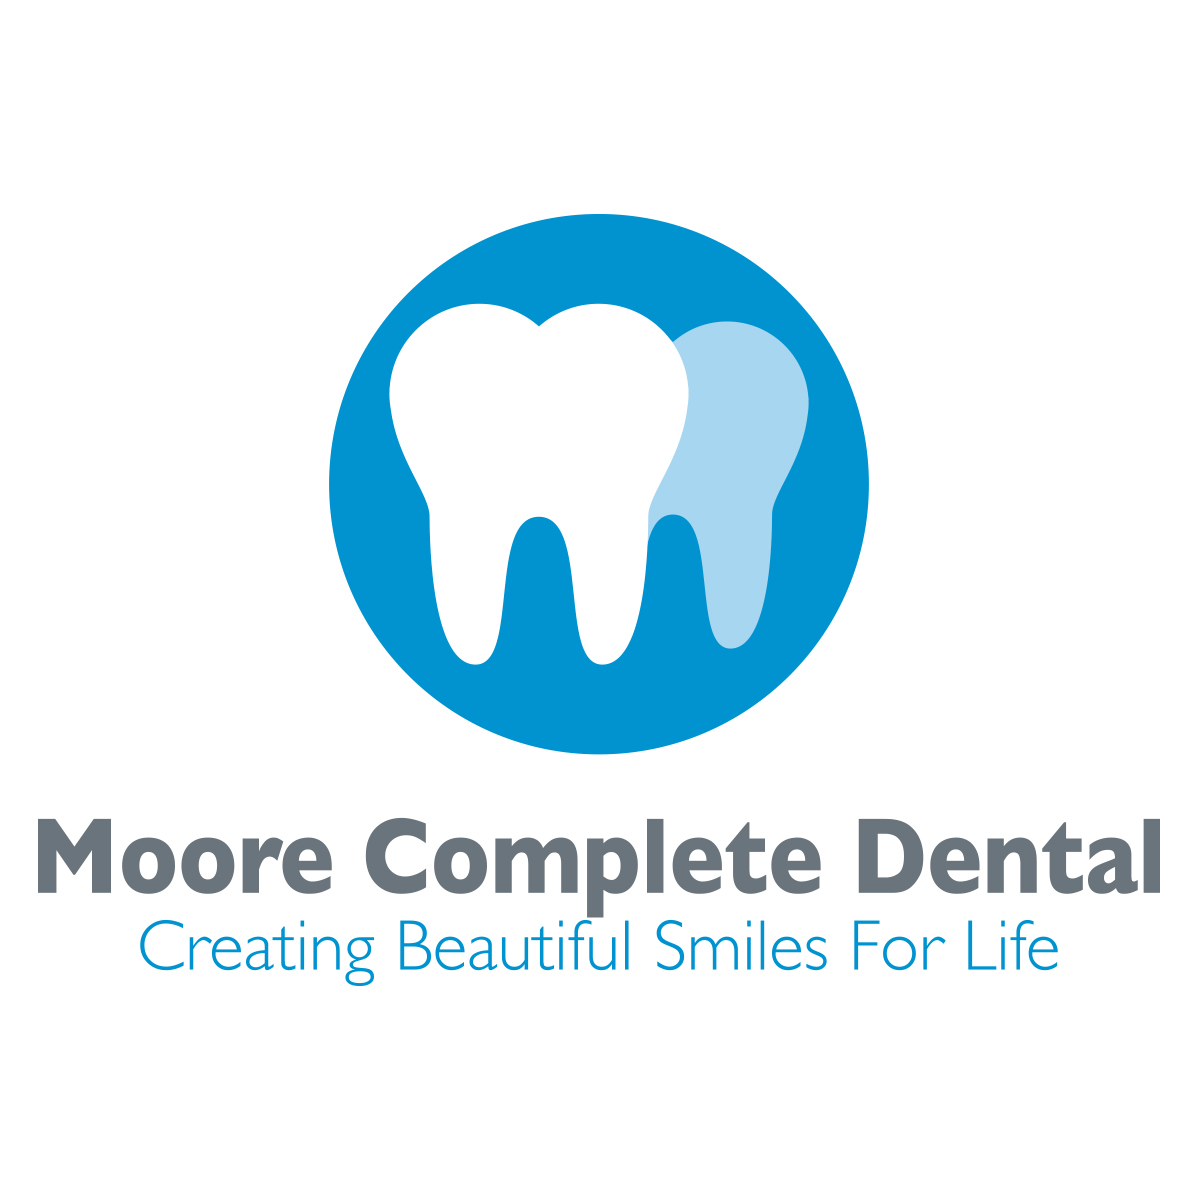 Moore Complete Dental